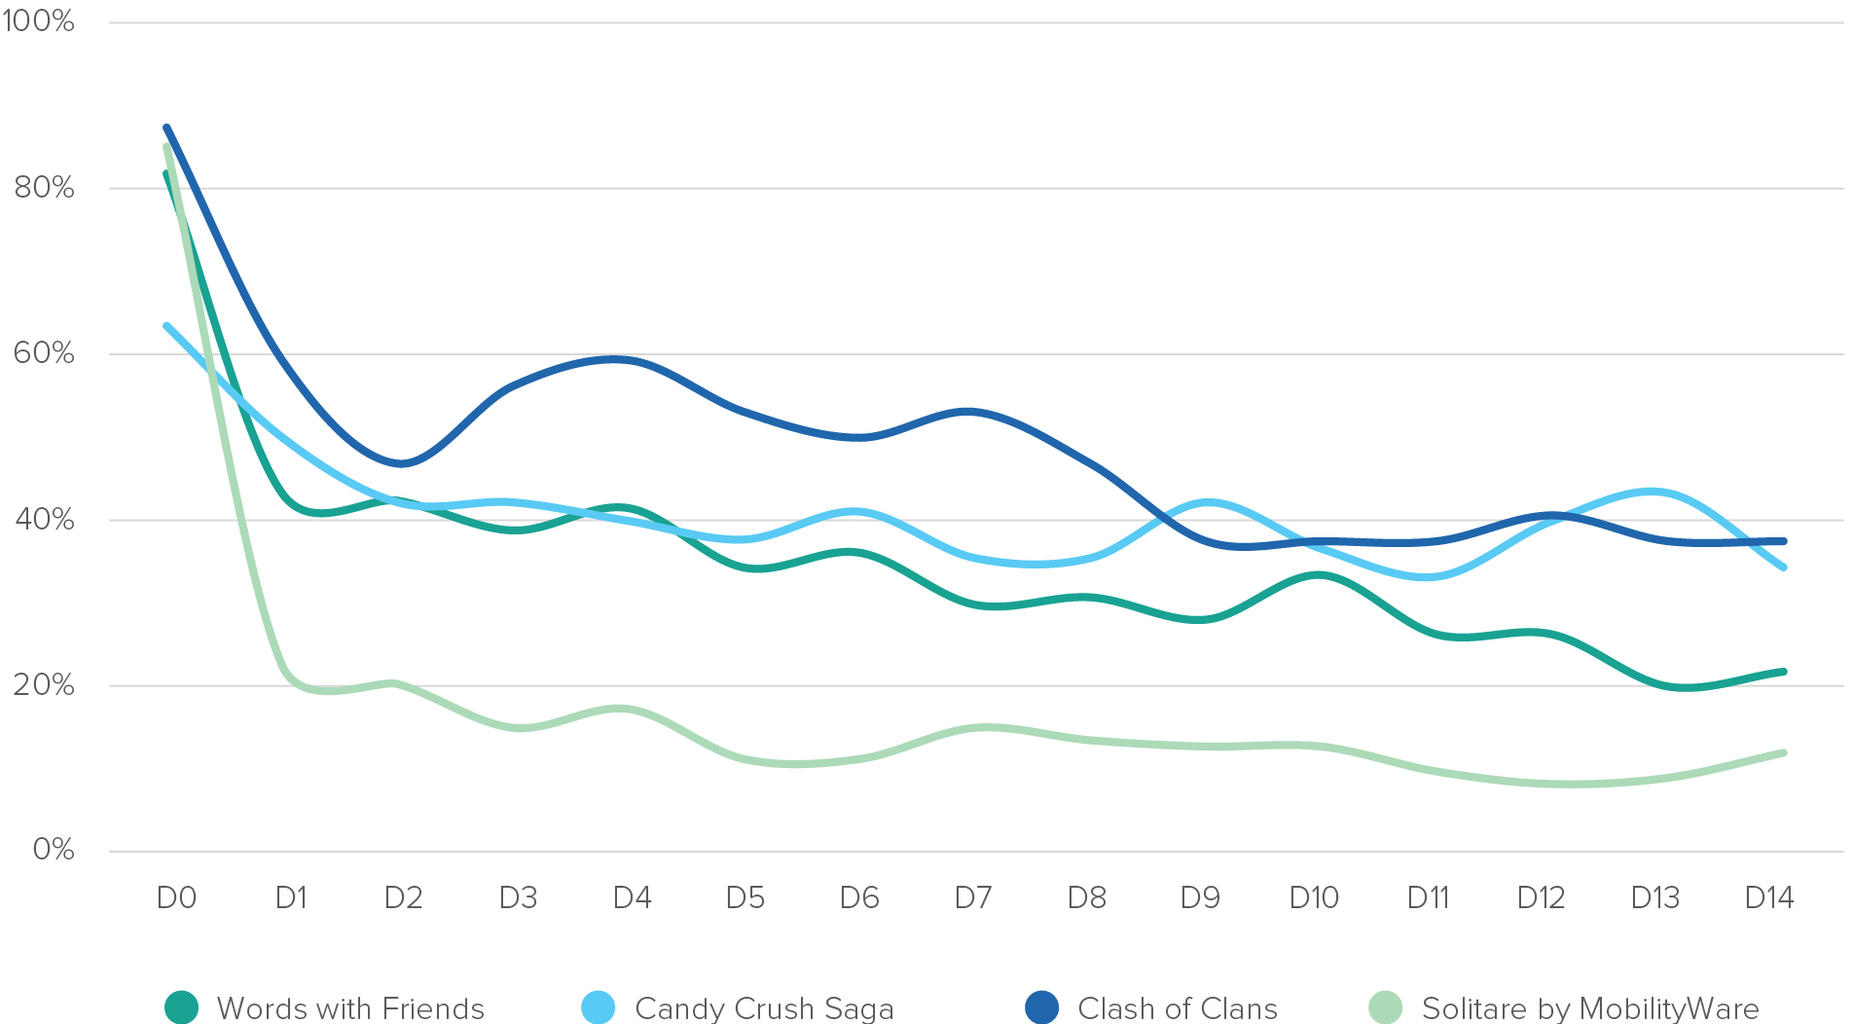 Above: Source: Verto Analytics, April 2016, Install Rates on Mobile Devices Only